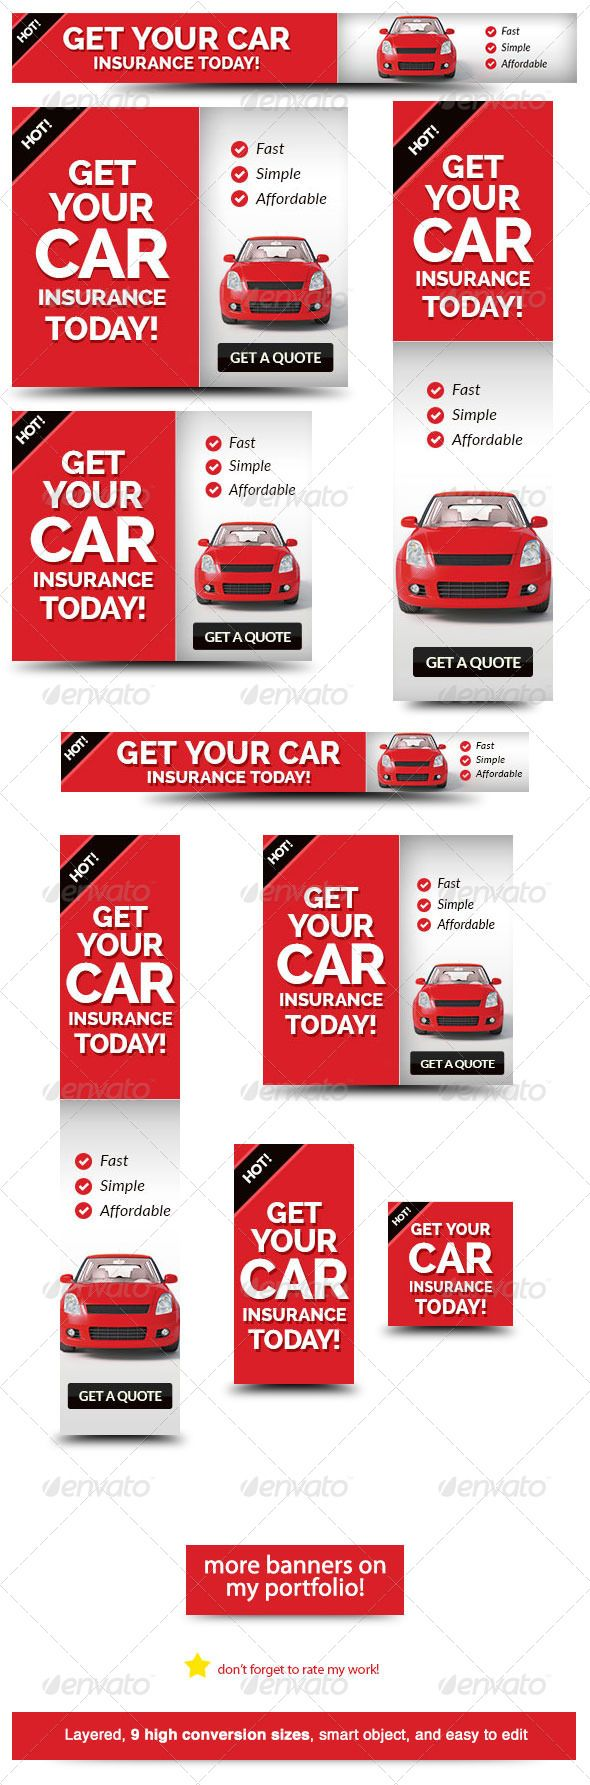 17 best images about banners ads behance banner cheap car insurance web banner ad